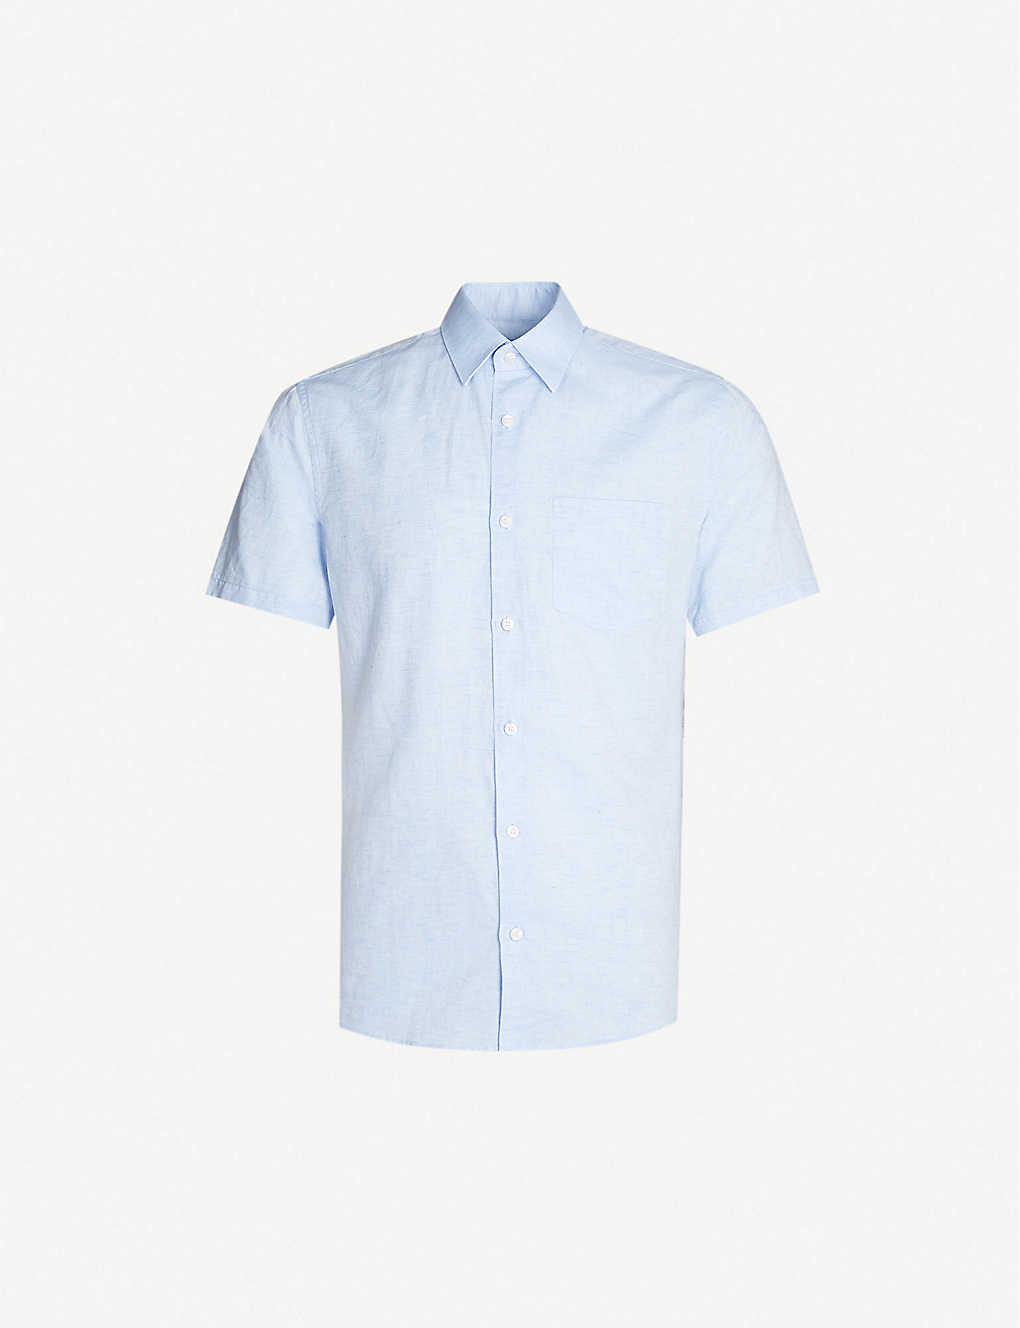 253cc72355e2 TIGER OF SWEDEN - Short-sleeved slim-fit cotton and linen-blend shirt |  Selfridges.com